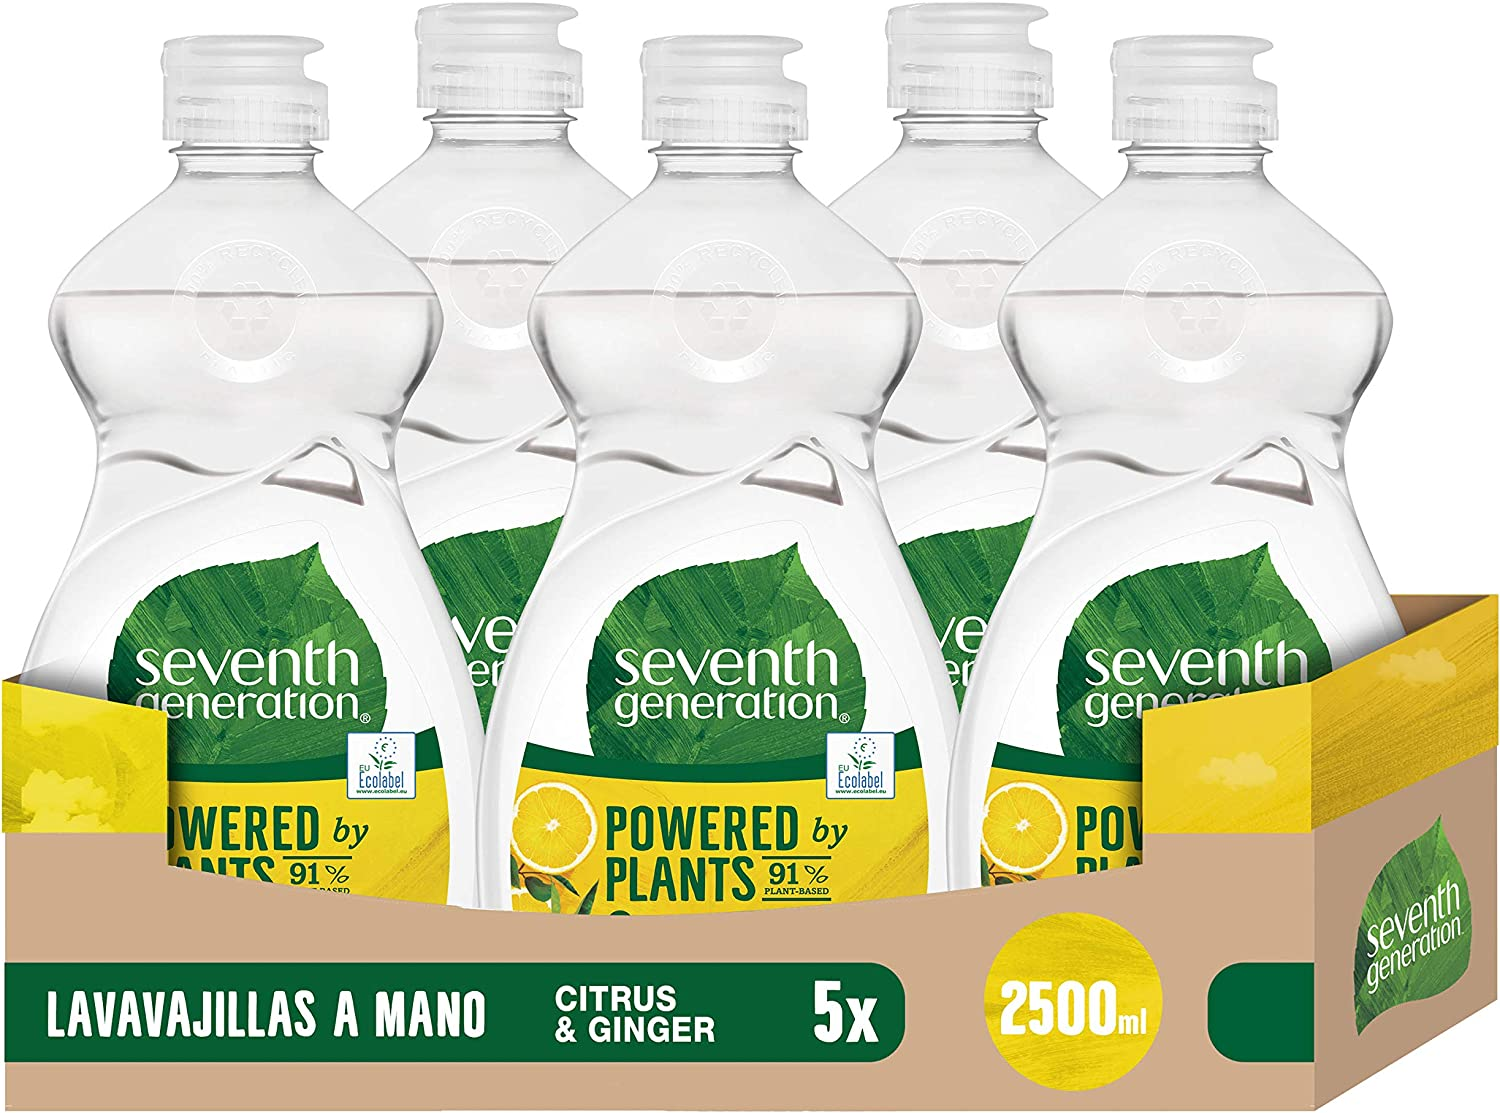 Seventh Generation Cítrico Lavavajillas a Mano, sin fragancias sintéticas y colorantes, Pack de 5 x 500 ml (Total: 2500 ml)